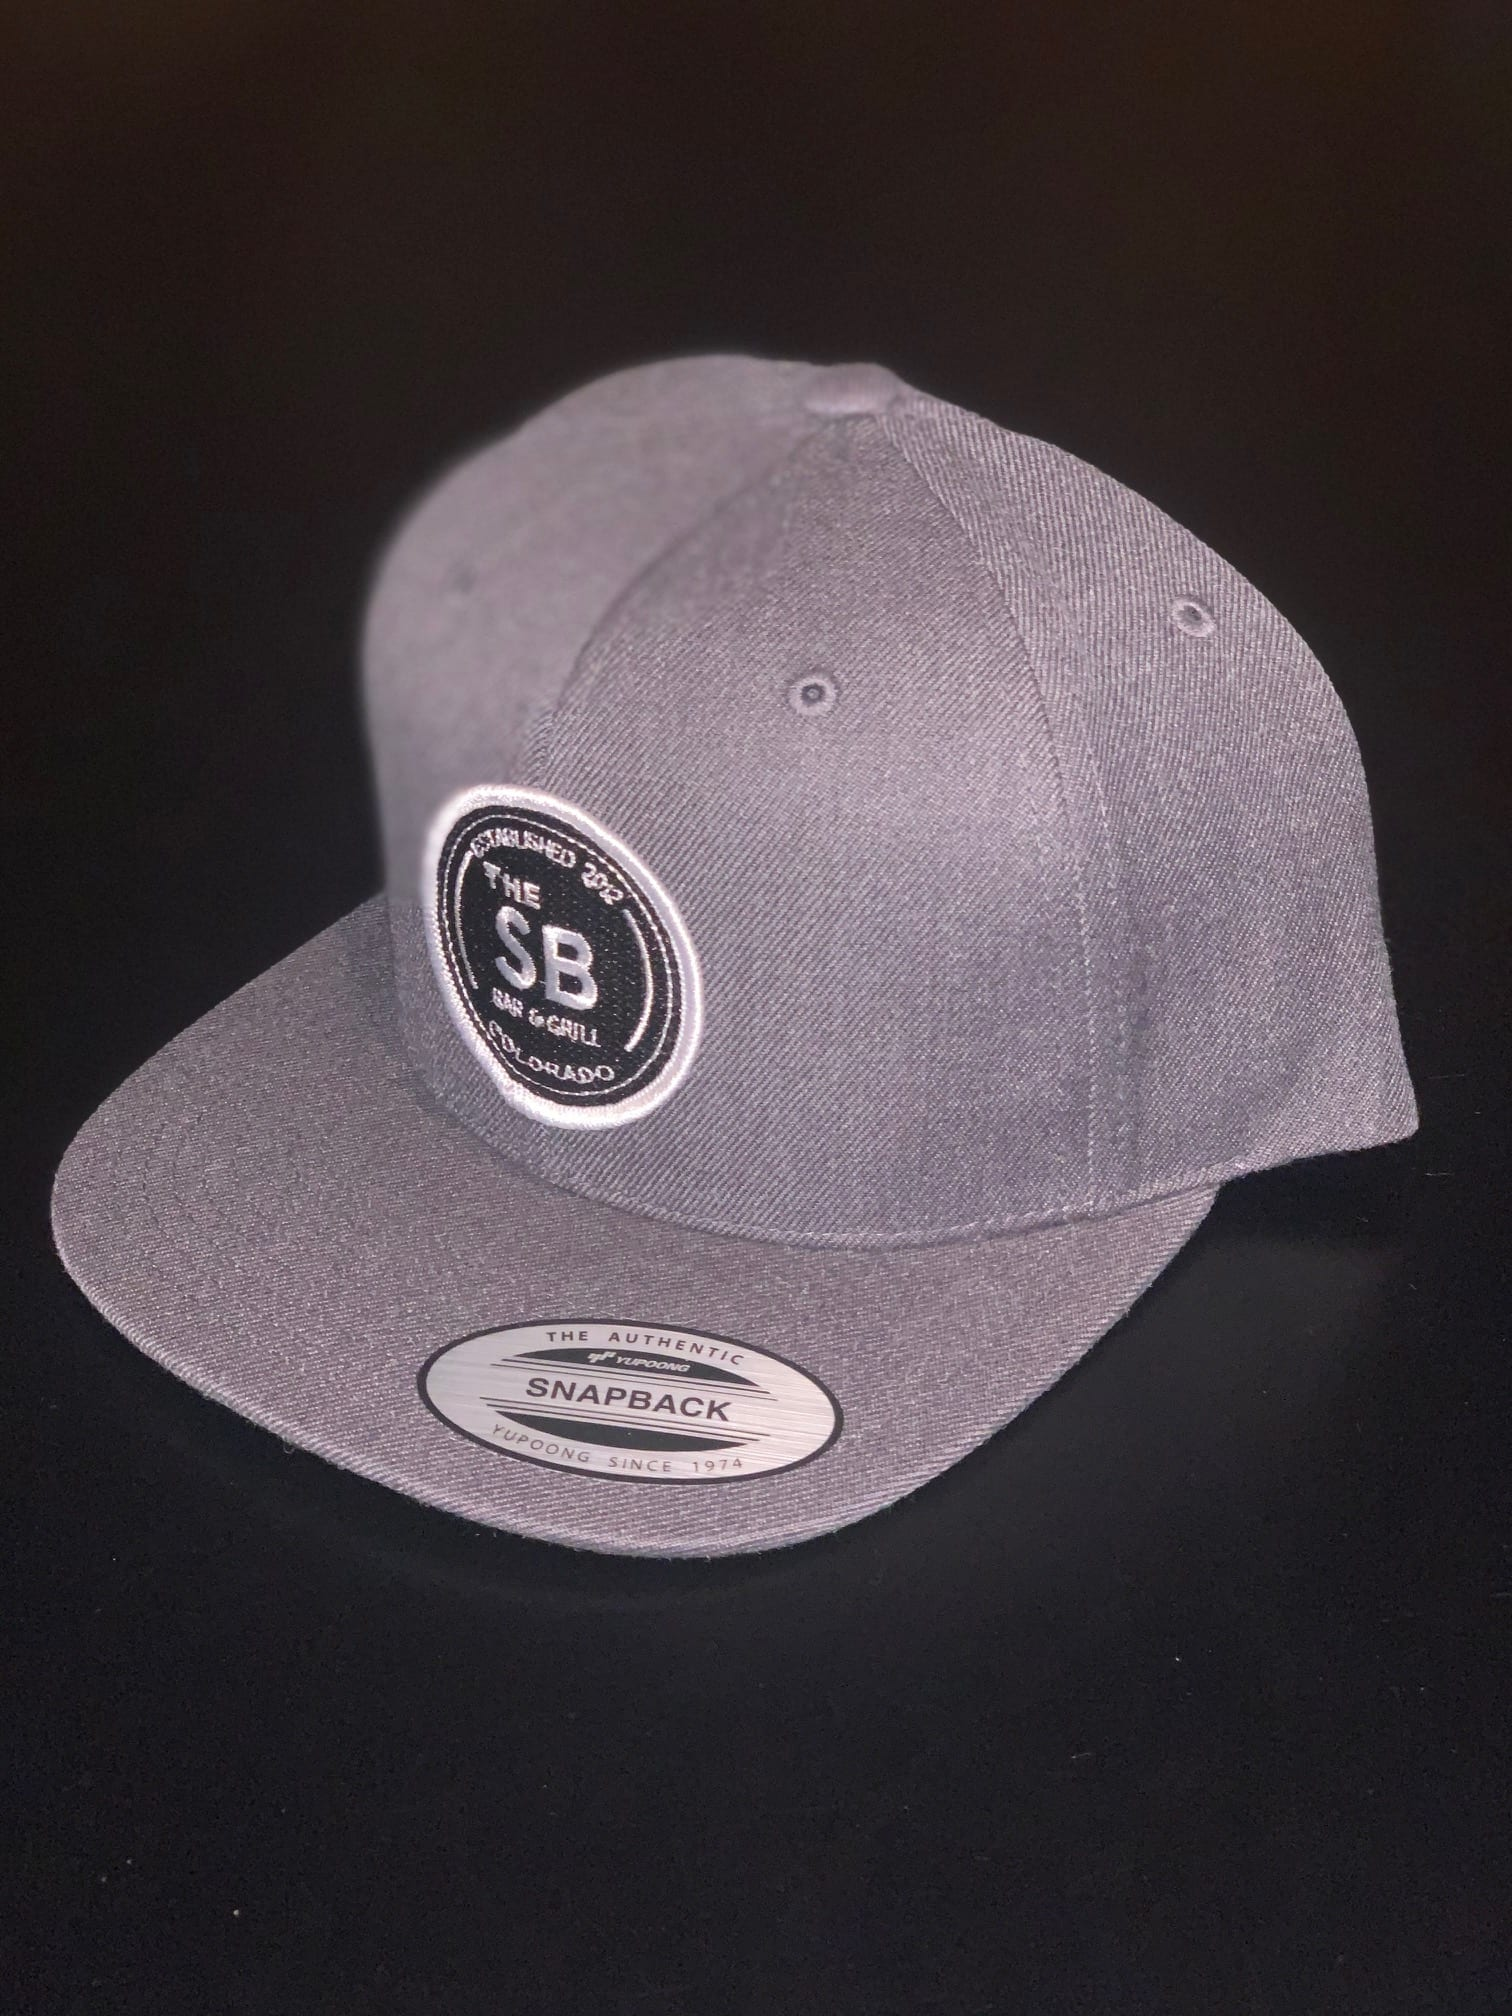 Grey snapback with black badge logo